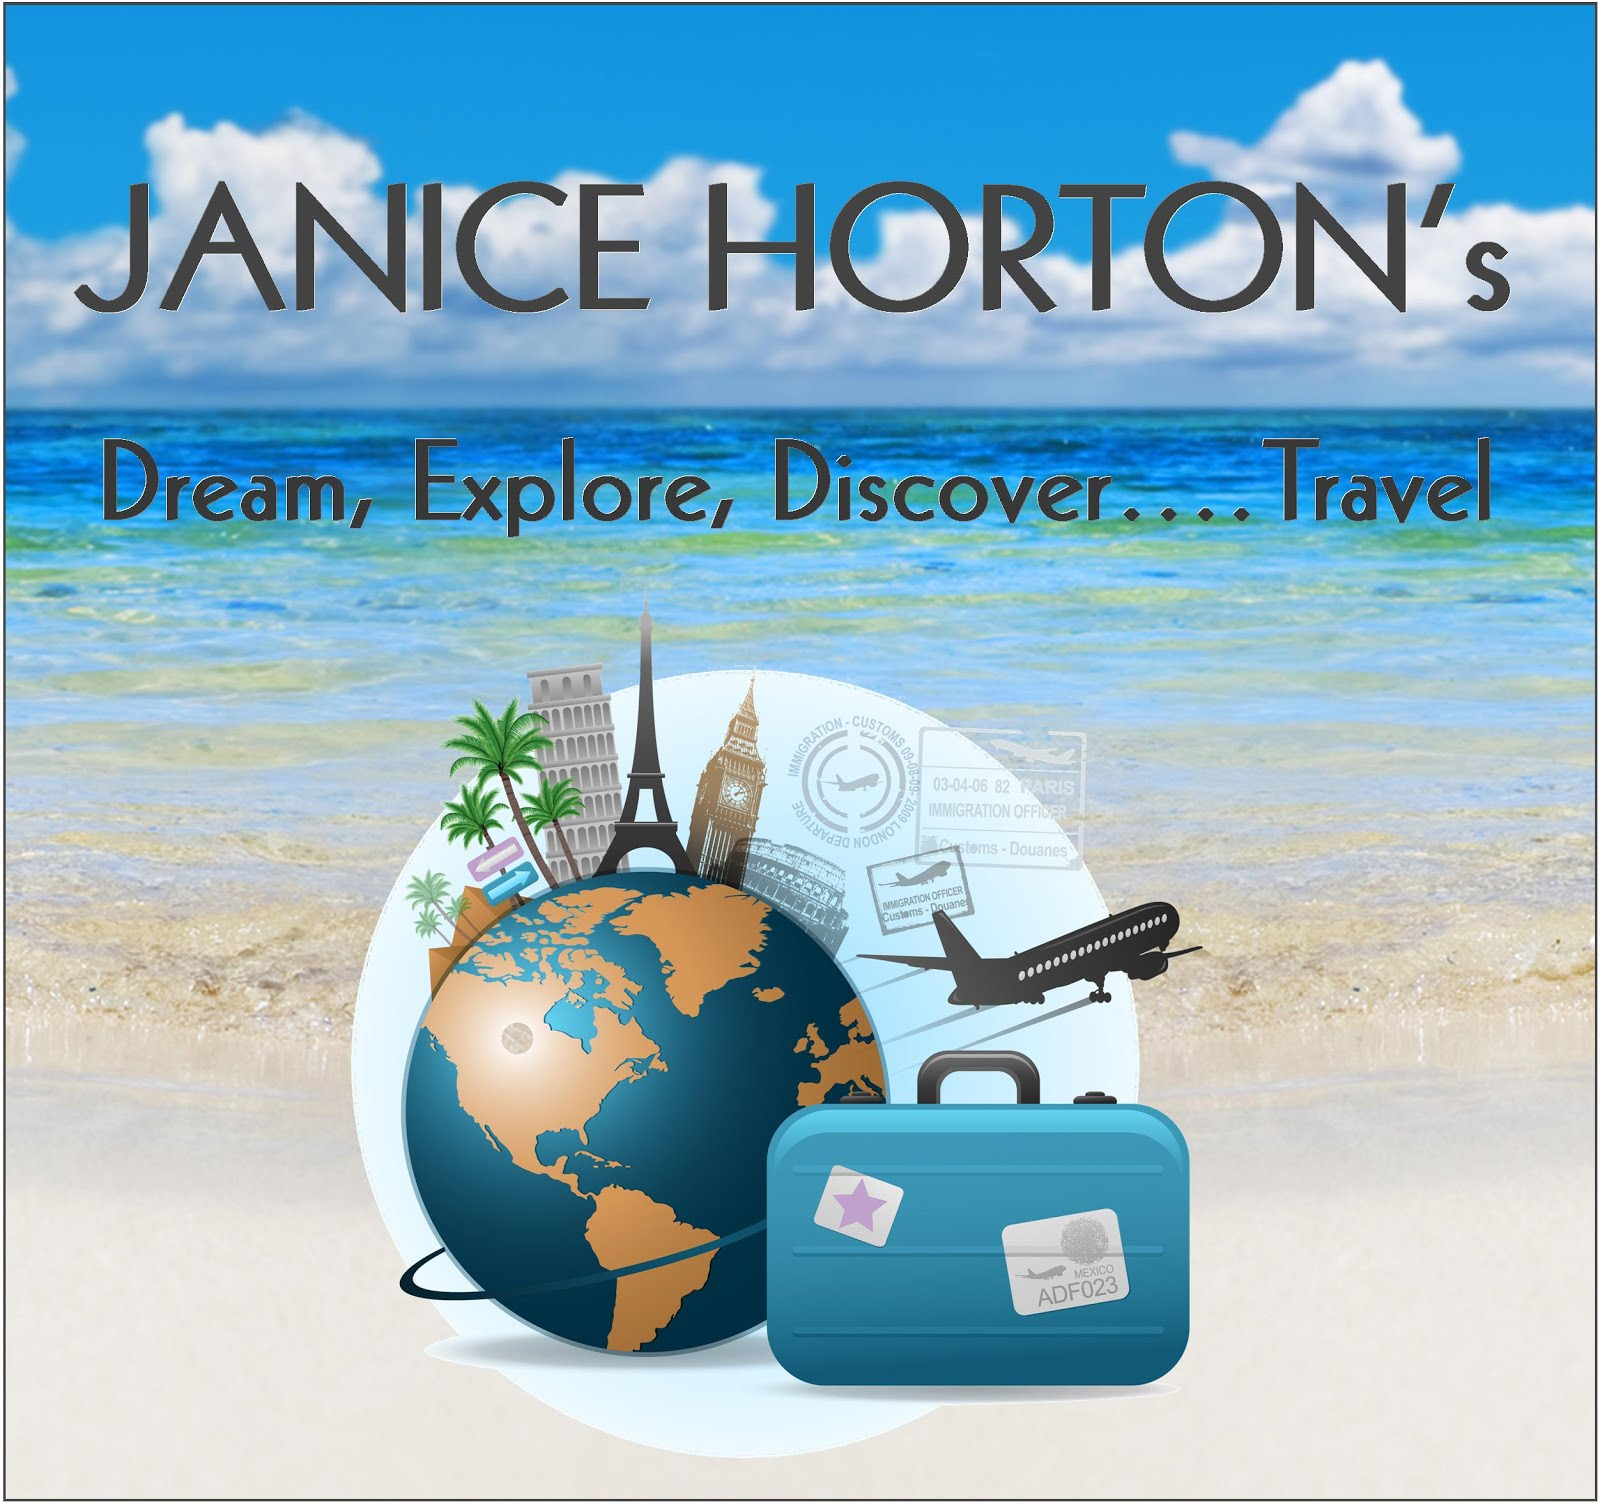 Dream, Explore, Discover...Travel! My NEW look travel feature for LLm Ezine